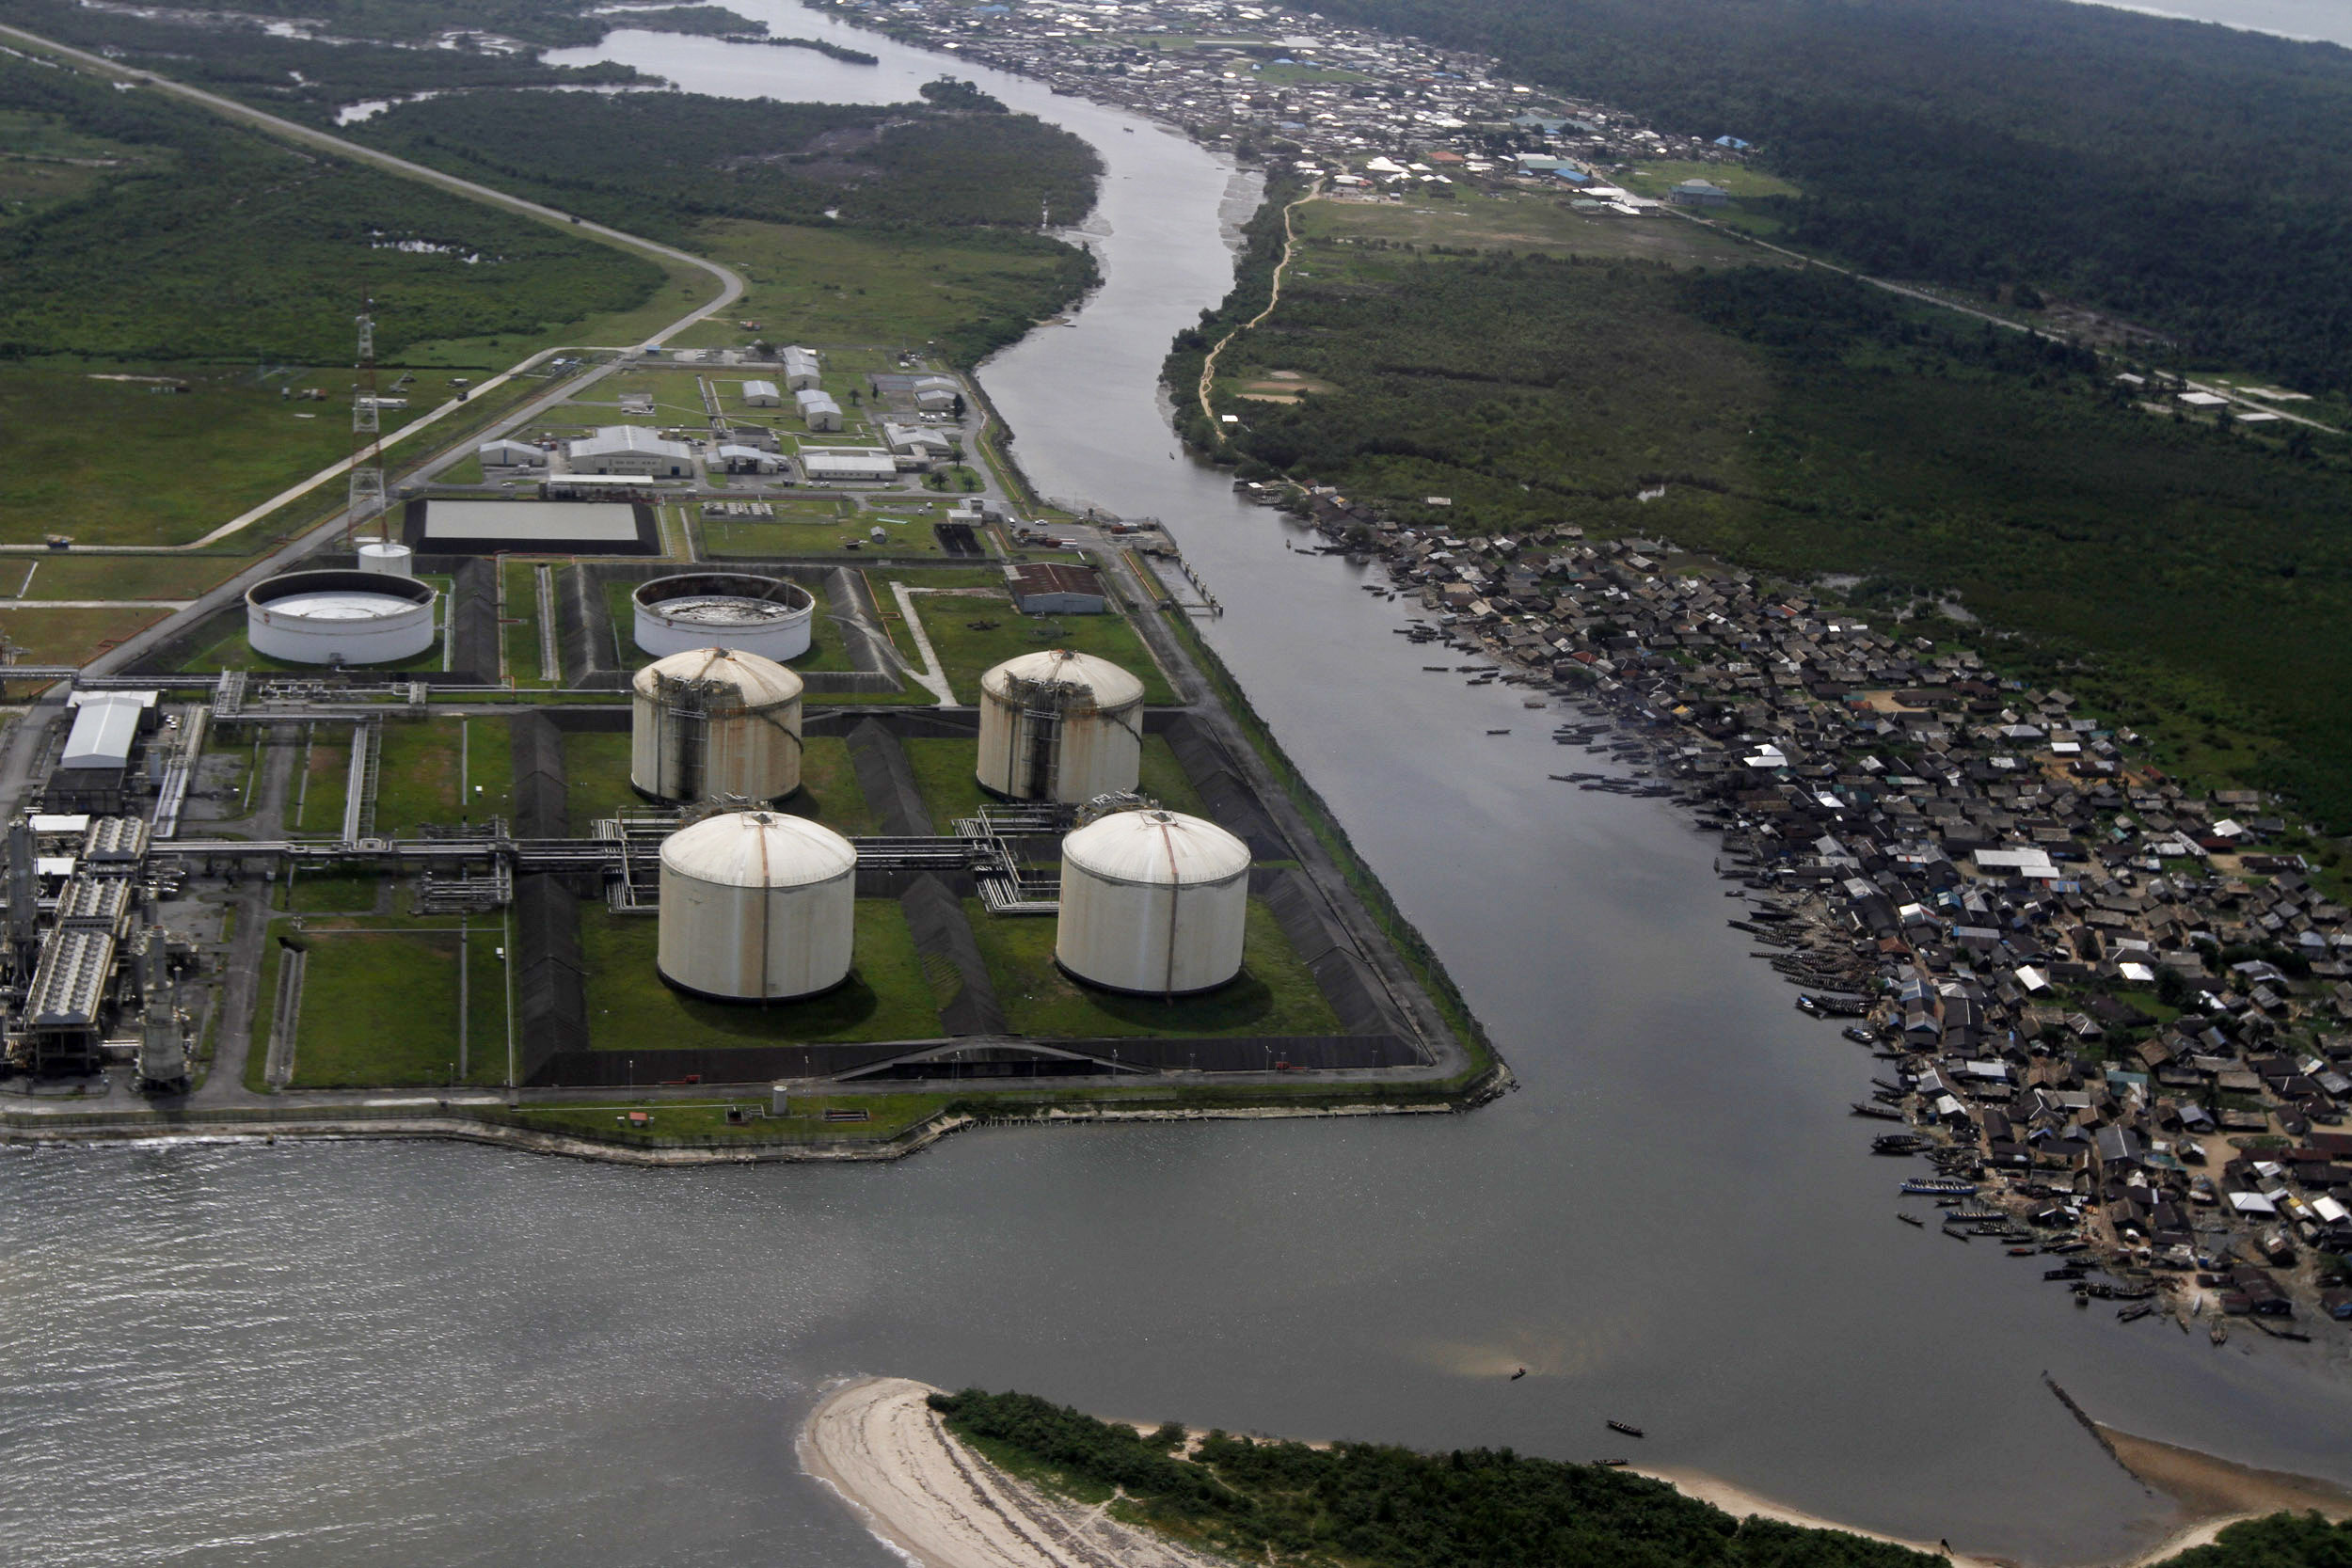 A view of the Nigeria Liquified Natural Gas Company (NLNG) near Finima village, during an aerial tour by the Royal Dutch Shell company, in Bonny March 22, 2013. REUTERS/Akintunde Akinleye (NIGERIA - Tags: ENERGY BUSINESS) - GM1E93N11XV01